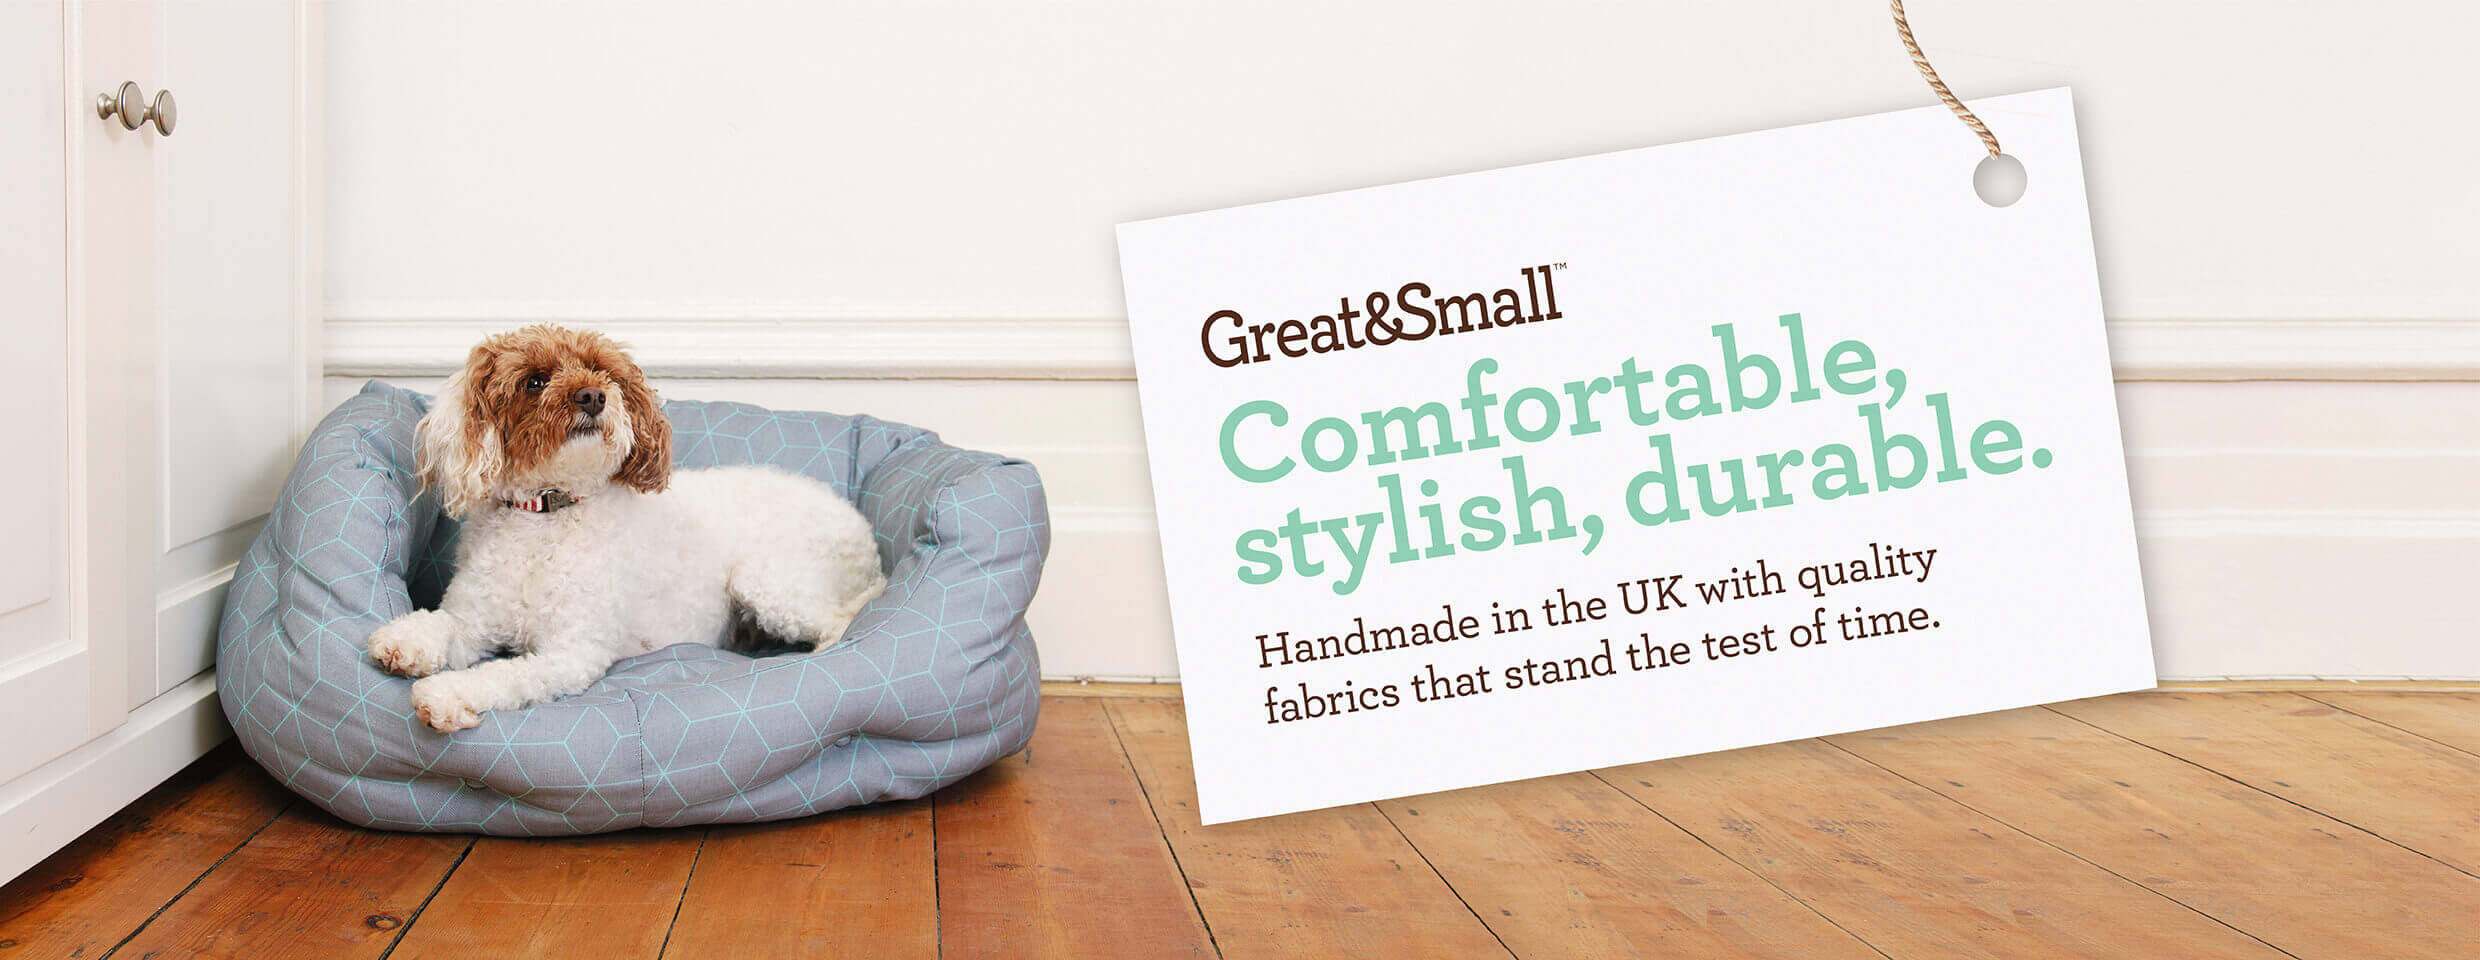 Great&Small - Handmade Dog Beds